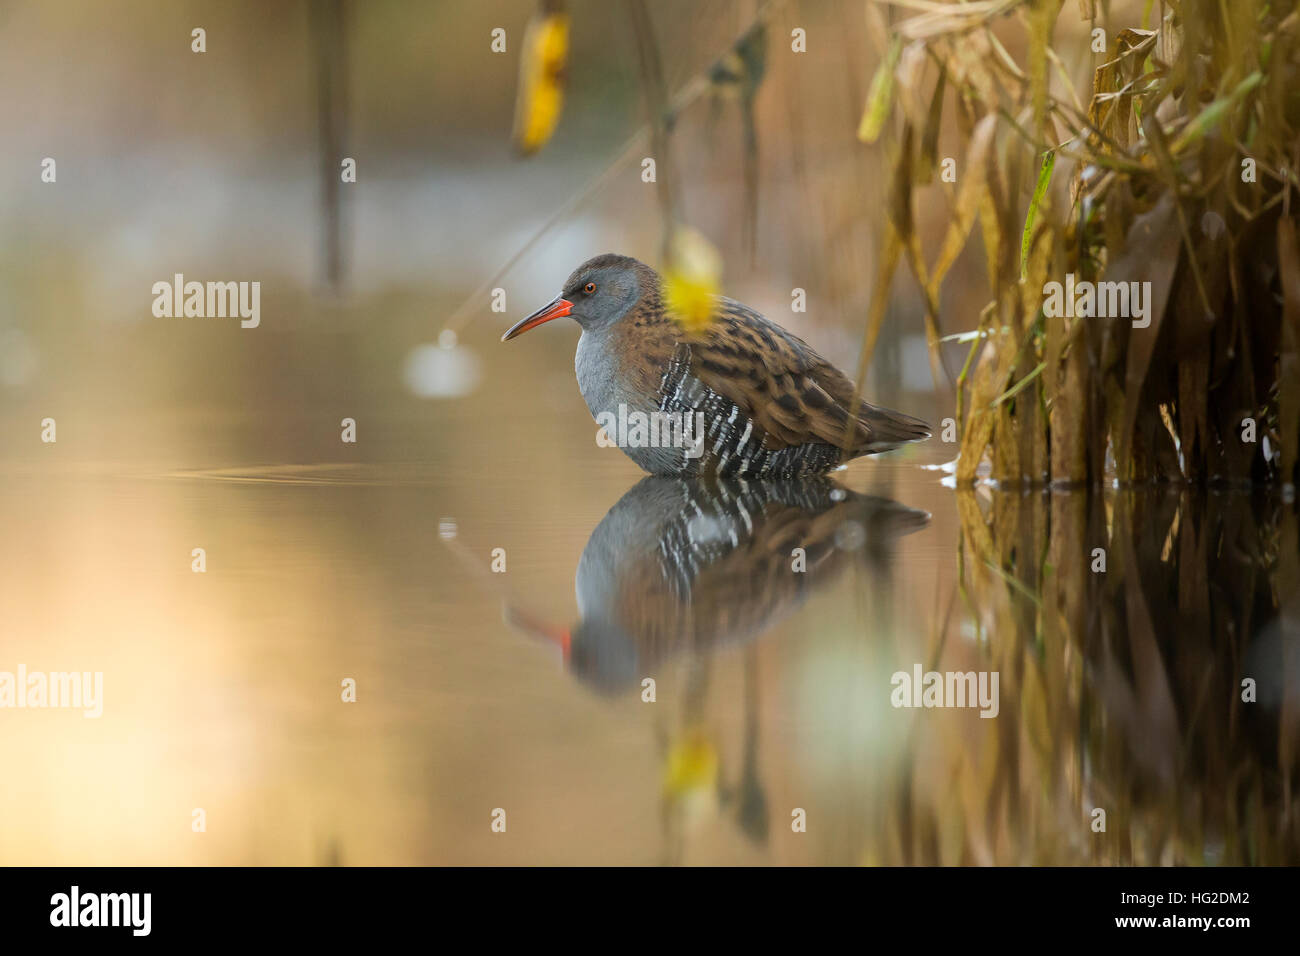 Water Rail (Rallus aquaticus) by the river bank in the early morning light - Stock Image